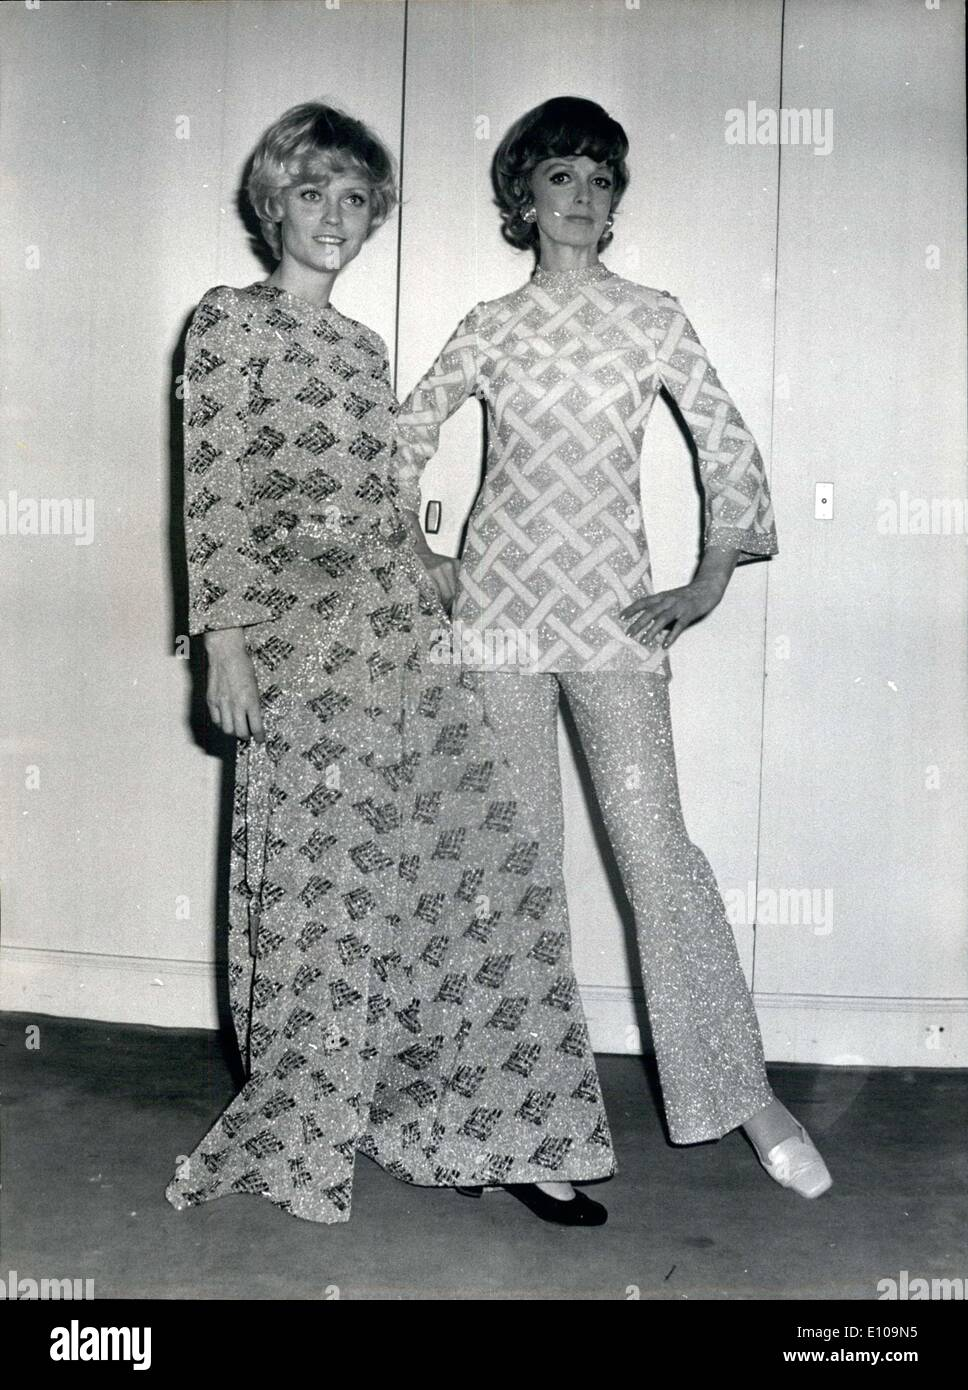 90d1800a 16, 1970 - Pierre Balmain Models Wearing His Fall Designs - Stock Image